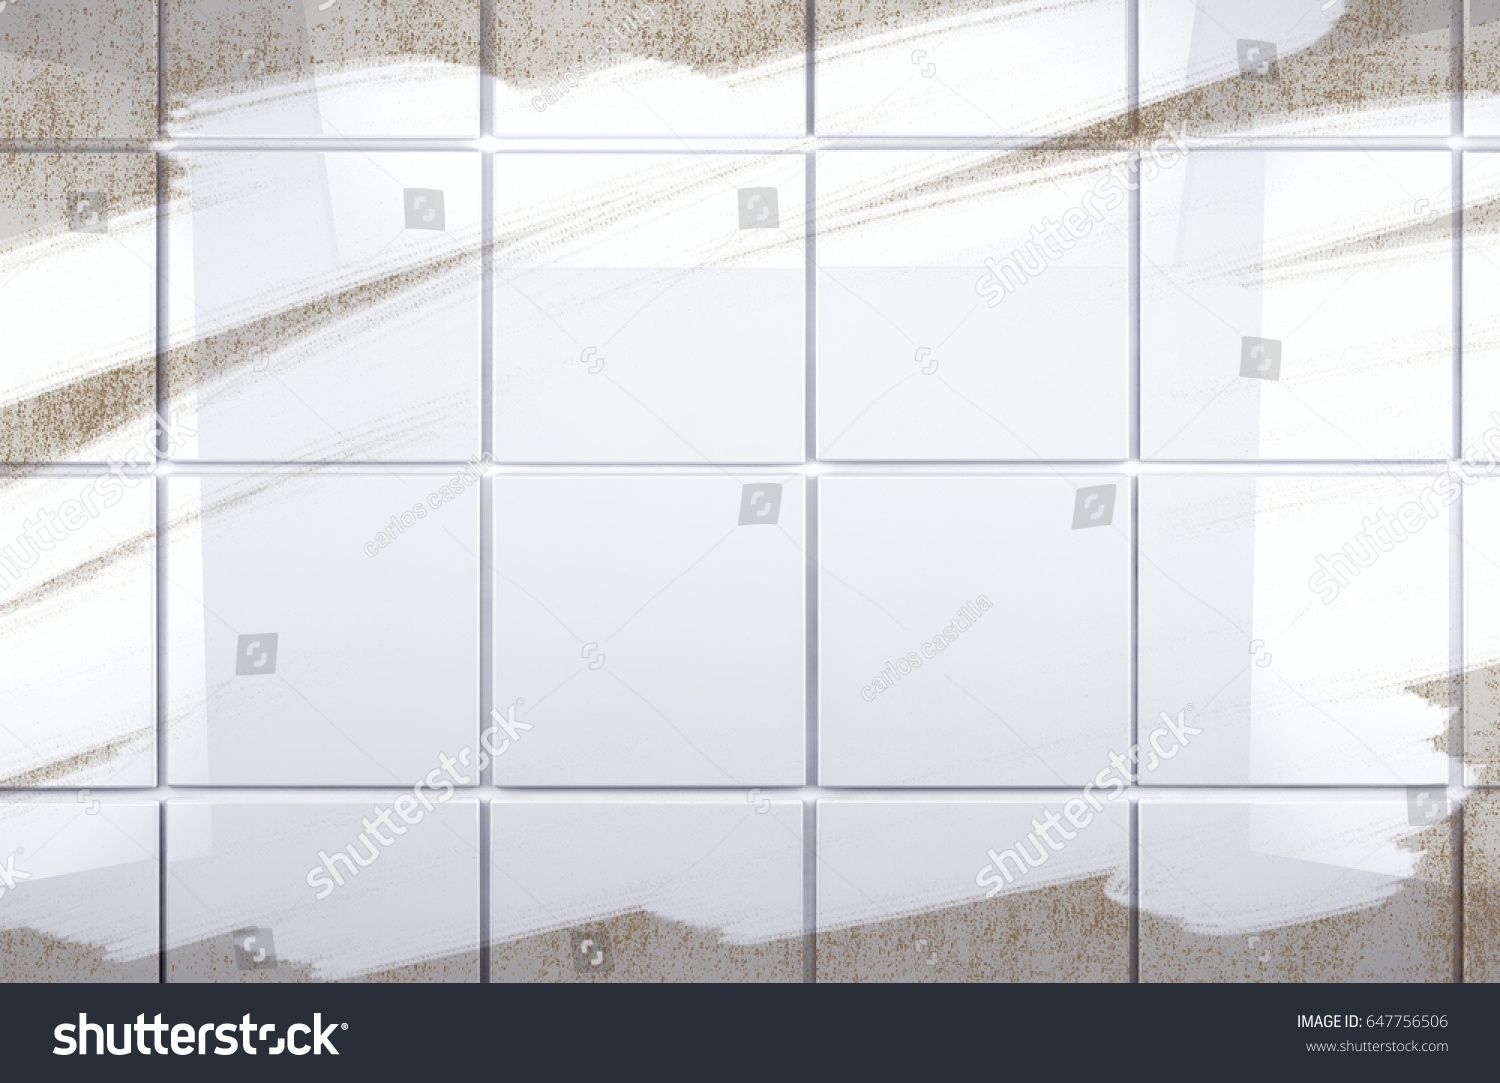 Background Cleaning Concept Housework Clean Tile Wall Stock ...